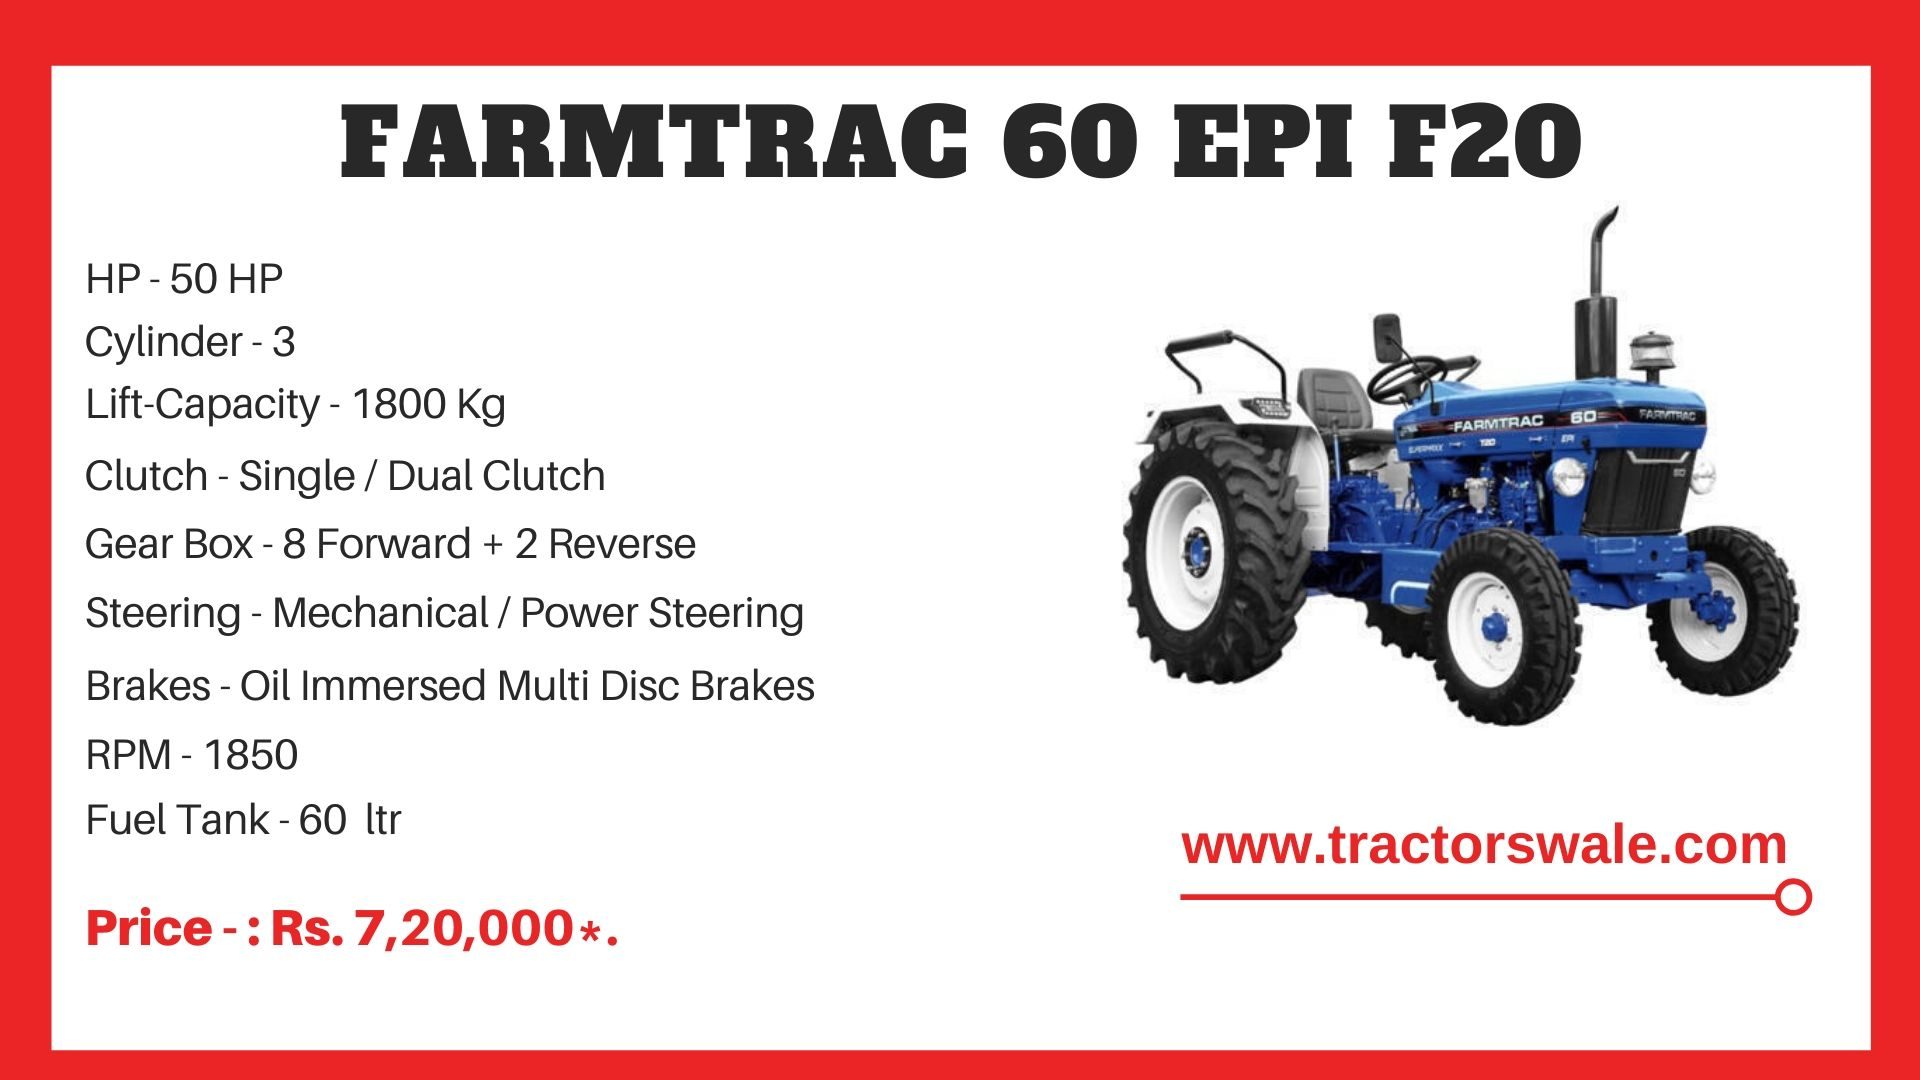 Farmtrac 60 F20 tractor price